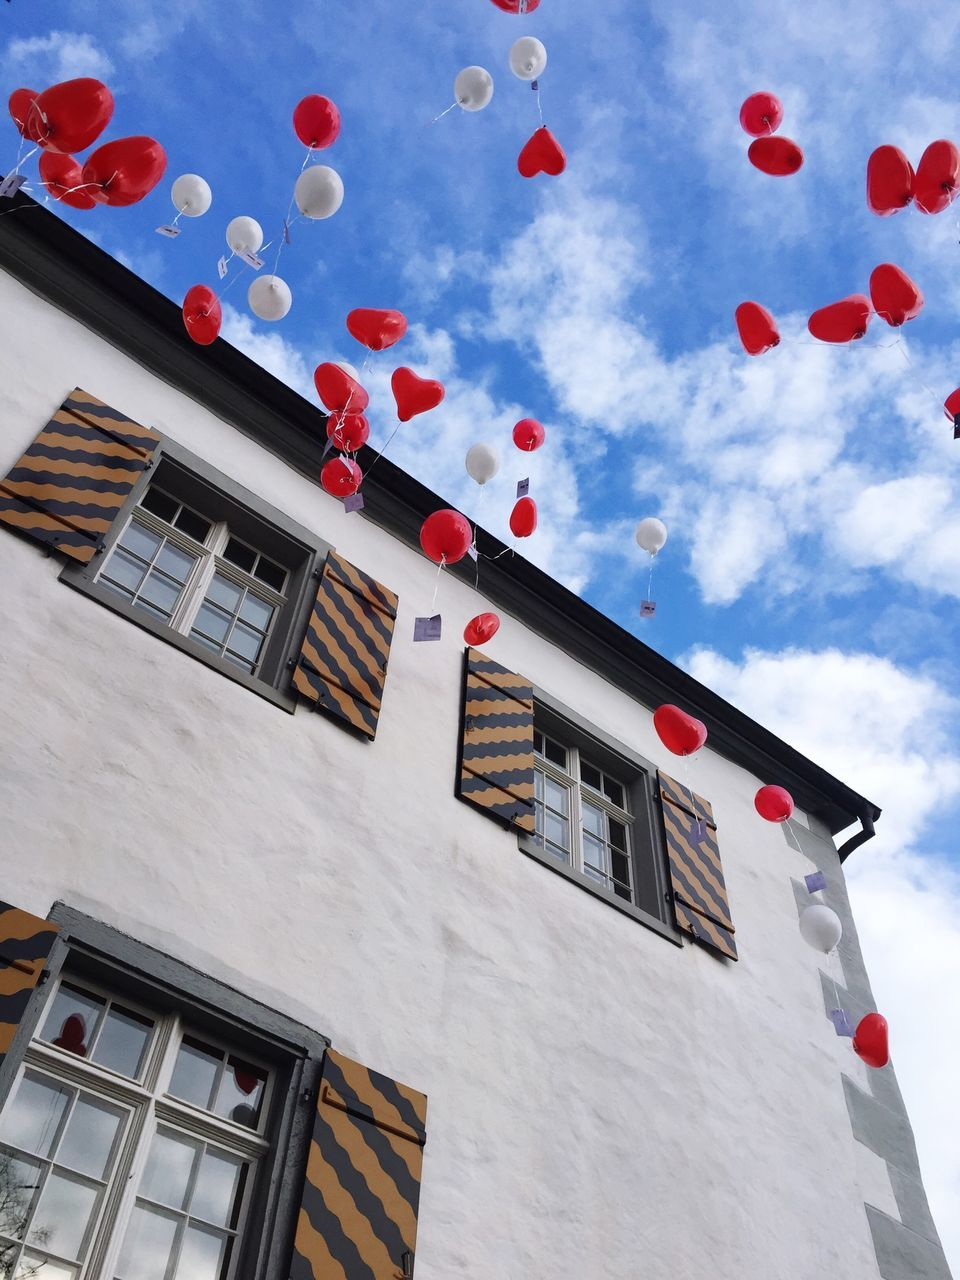 Low Angle View Of Balloons Flying By Building Against Cloudy Sky